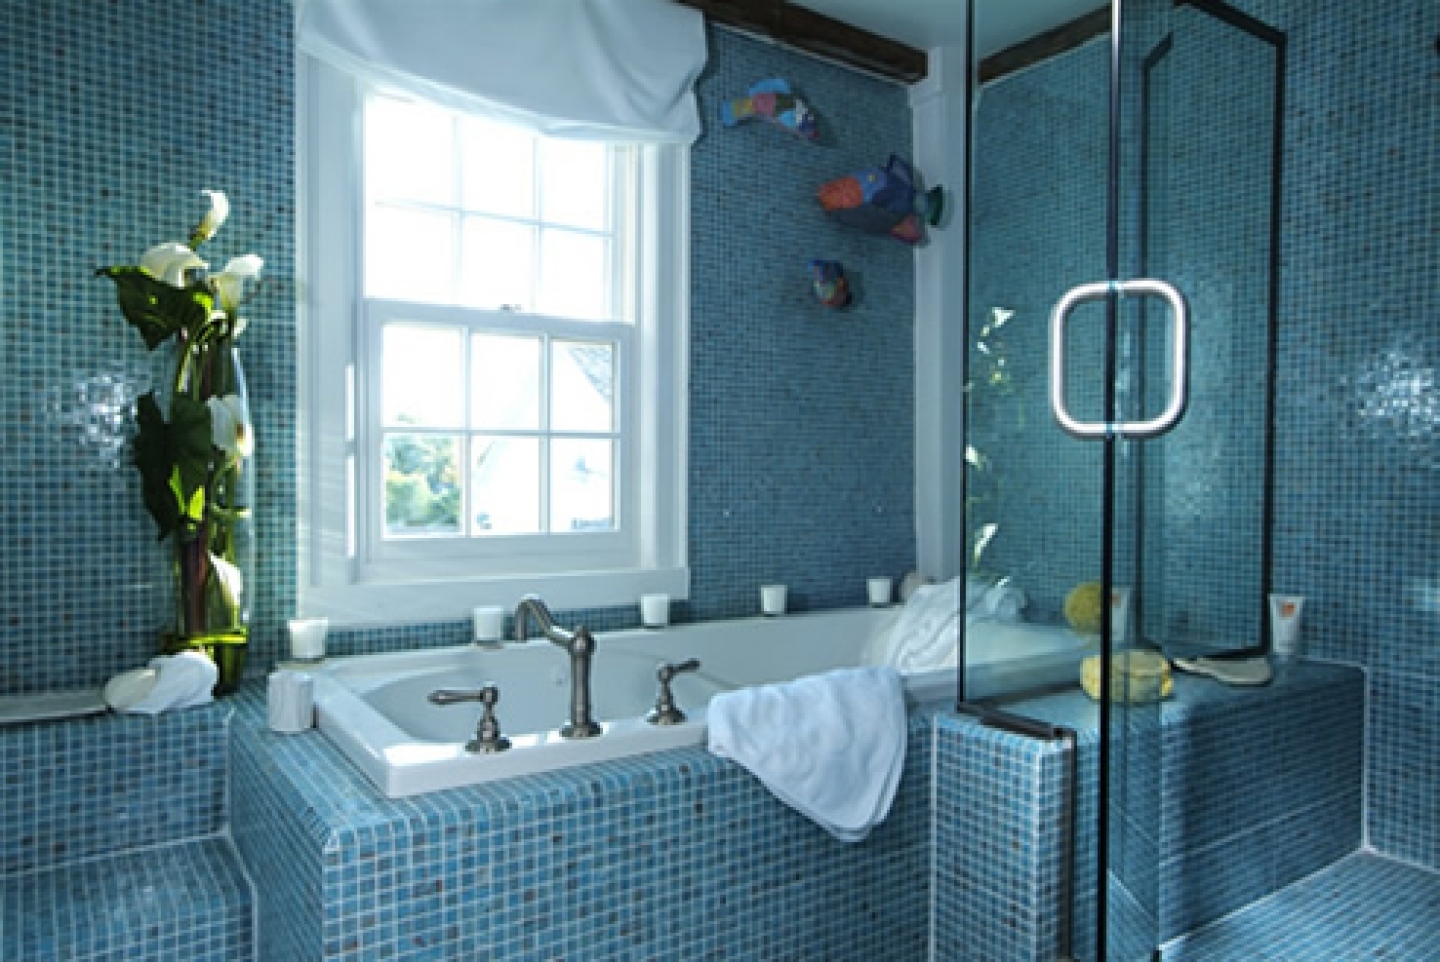 green wall paint color ideas for kitchen html with Vintage Blue Bathroom Tiles on Old Fashioned Bathroom Floor Tile also F3579dec1a1b9d10 furthermore The White Wall Controversy How The All White Aesthetic Has Affected Design as well Colors For Living Room together with Wall Mounted Shoe Rack.